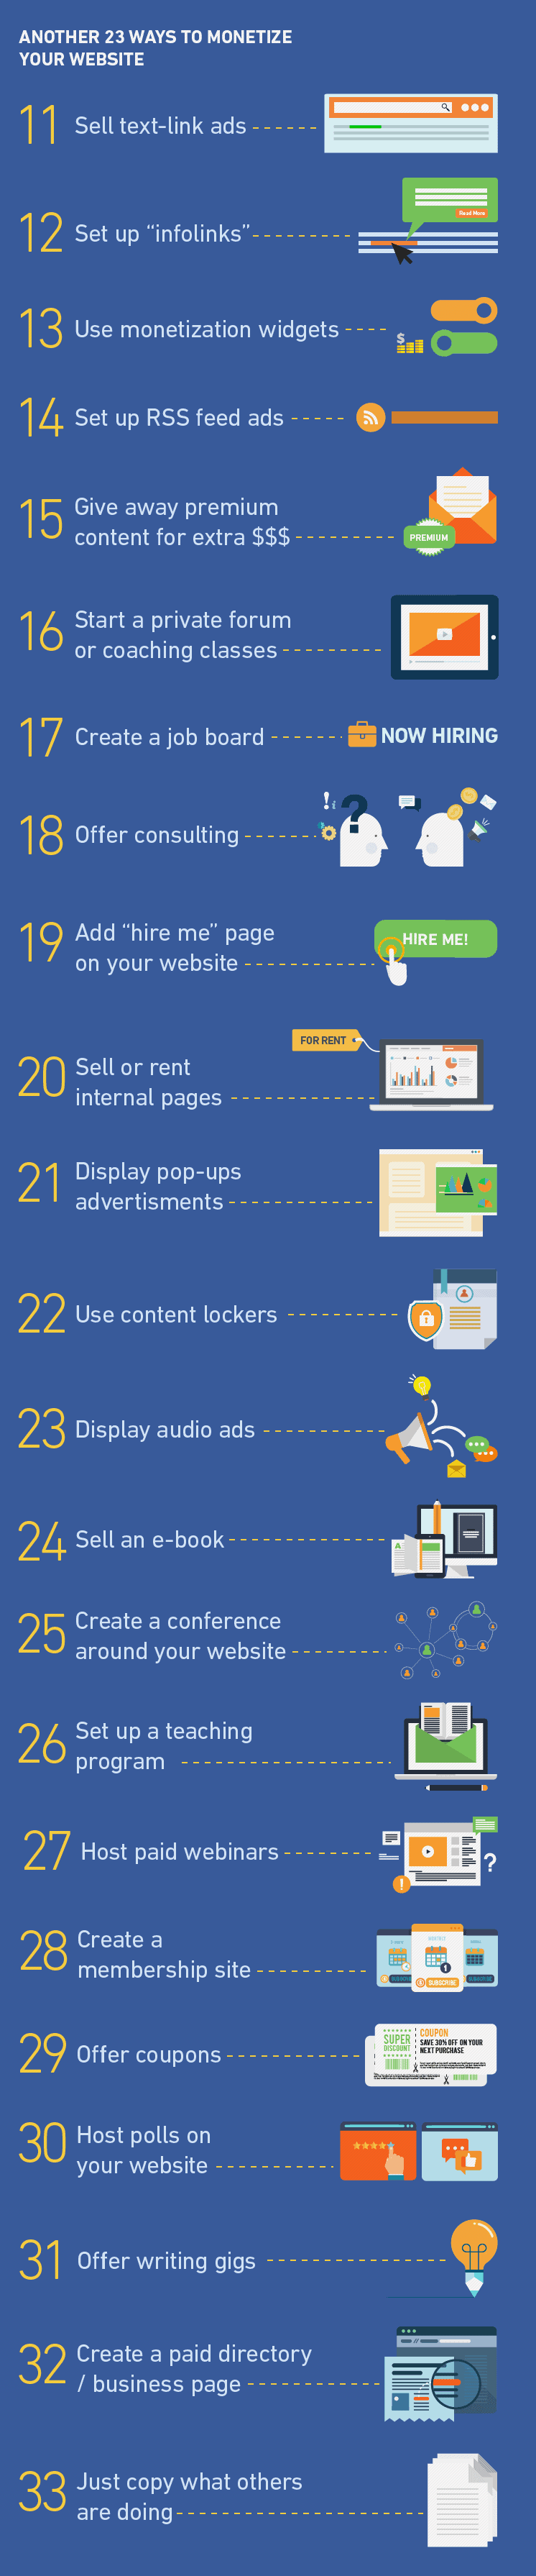 23 ways to make money with your website